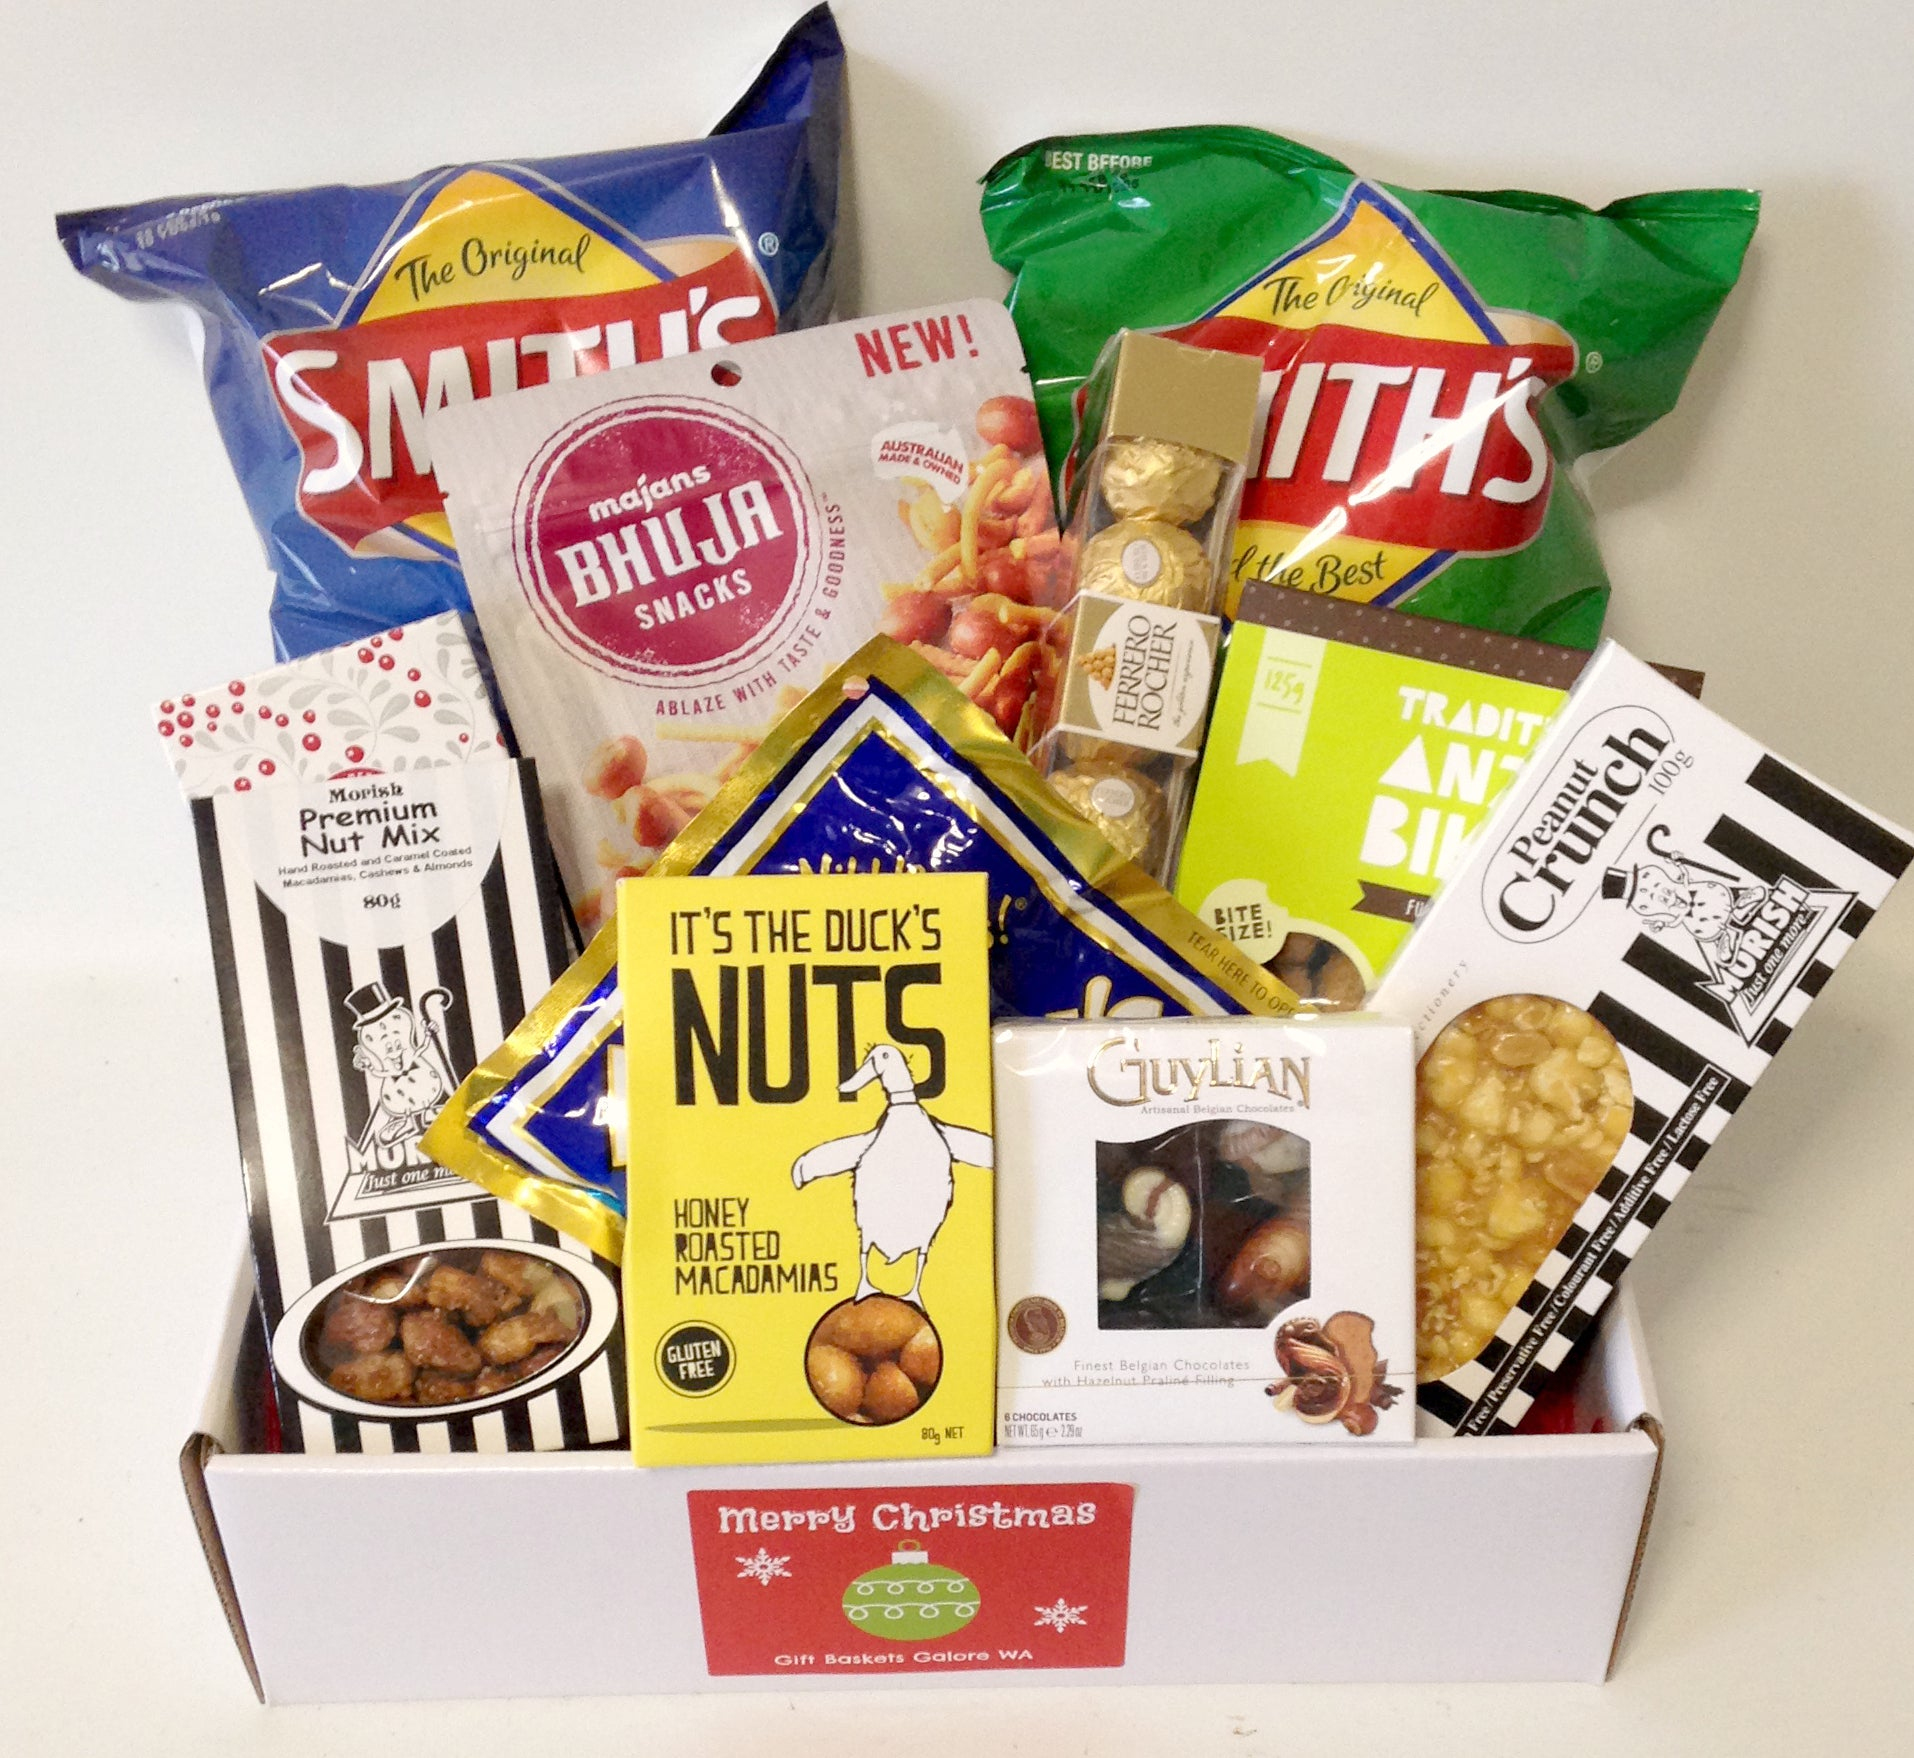 Christmas share box gift baskets galore perth wa men crates christmas share box gift baskets galore perth wa men crates australia negle Gallery